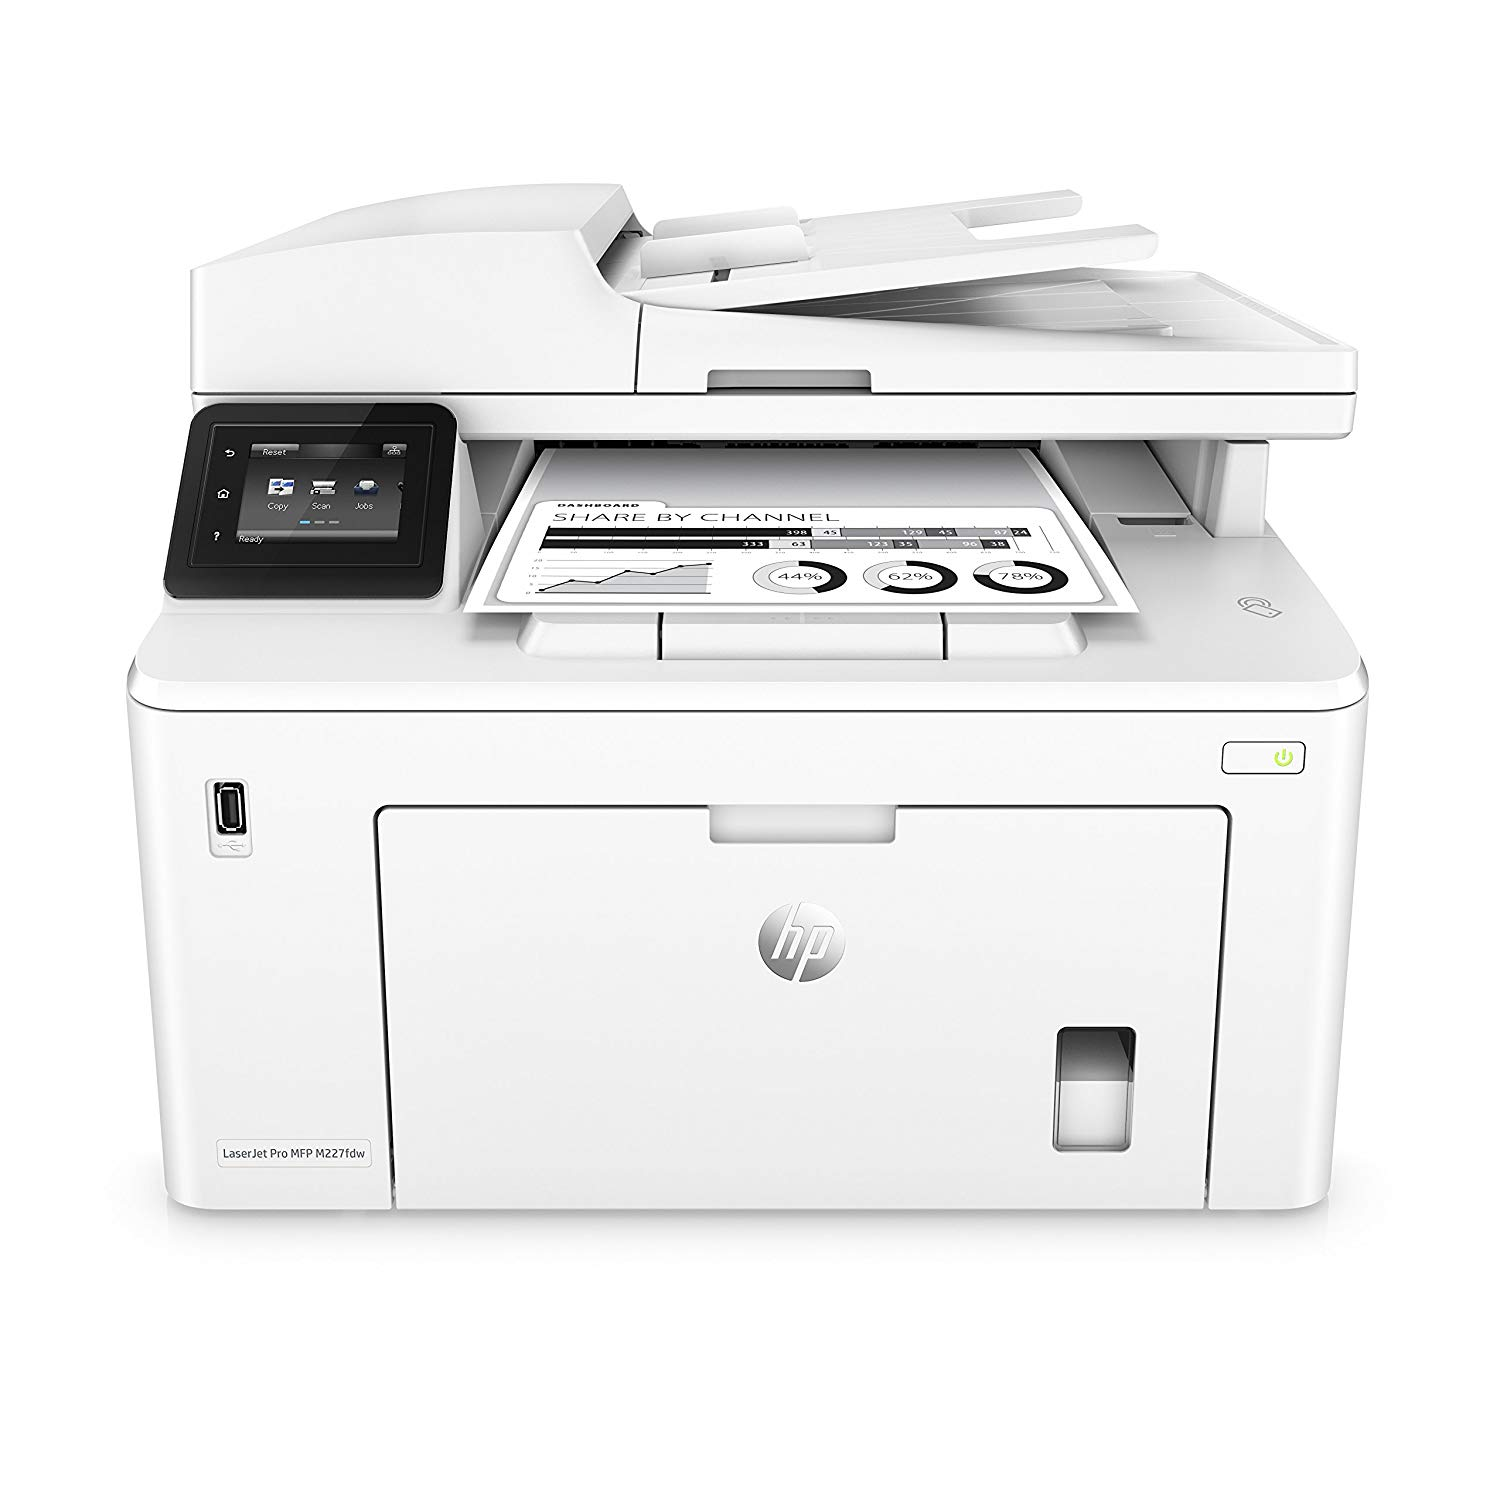 HP LaserJet Pro M227fdw Multi-Function Printer, White